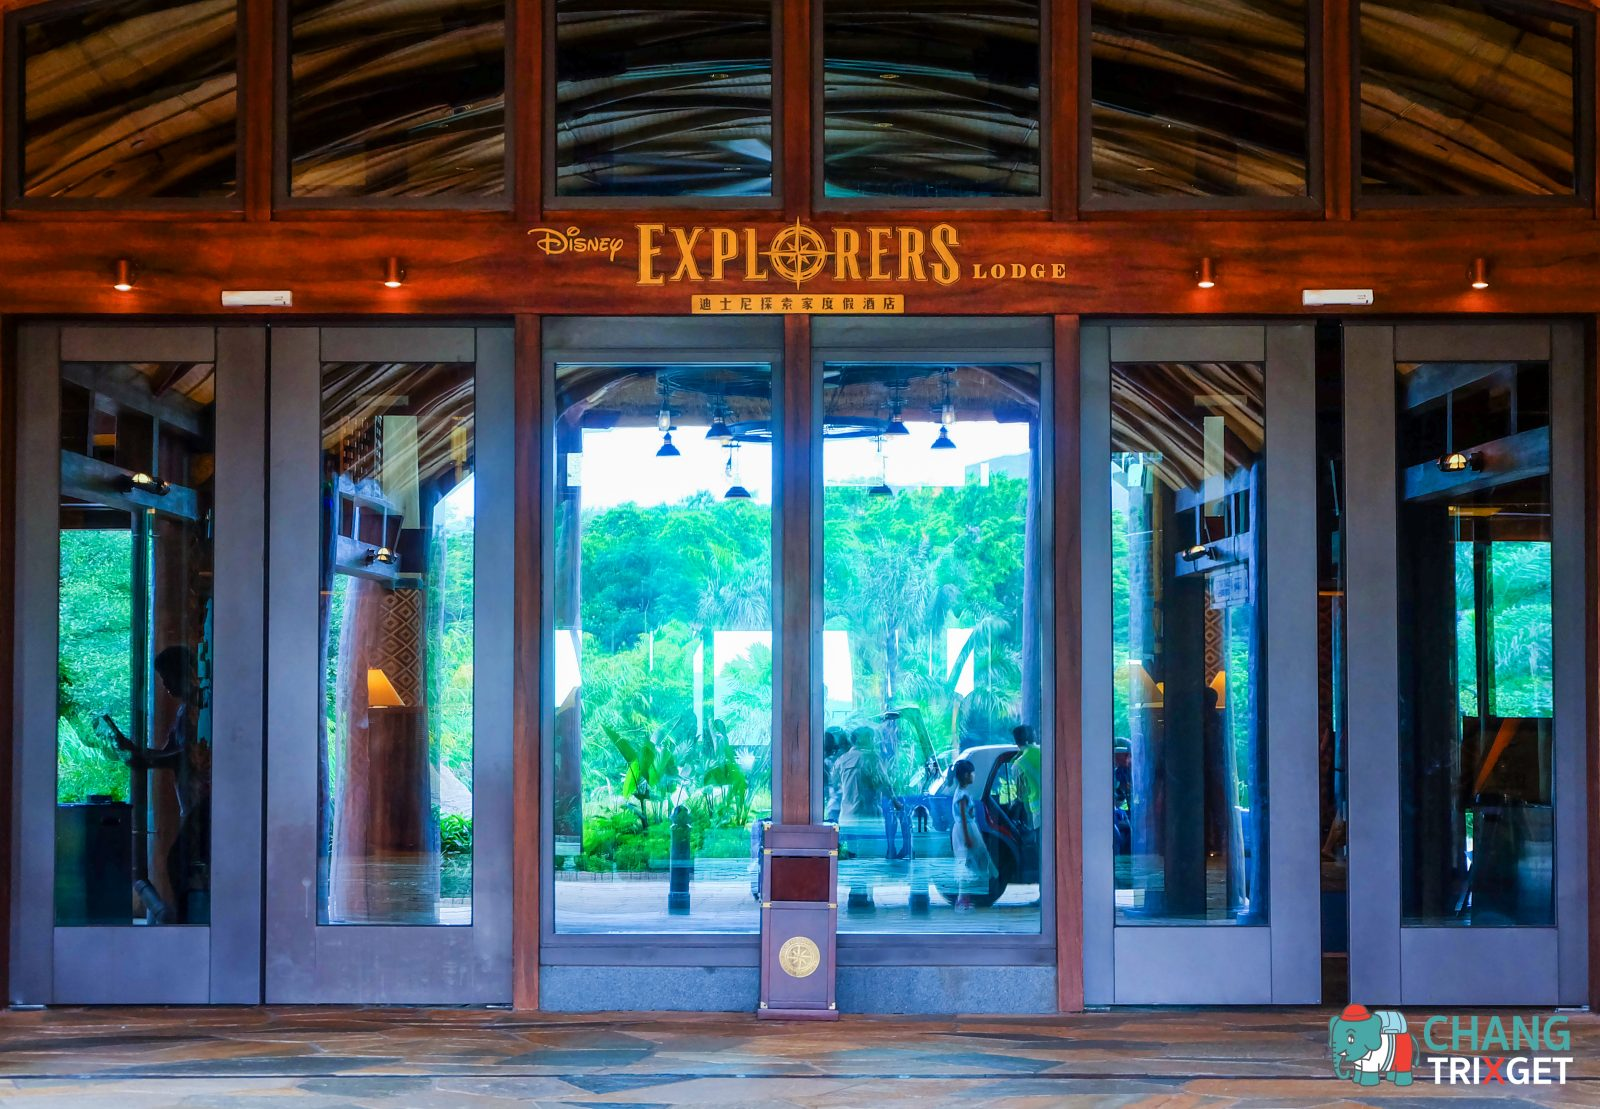 รีวิว Disney Explorers Lodge